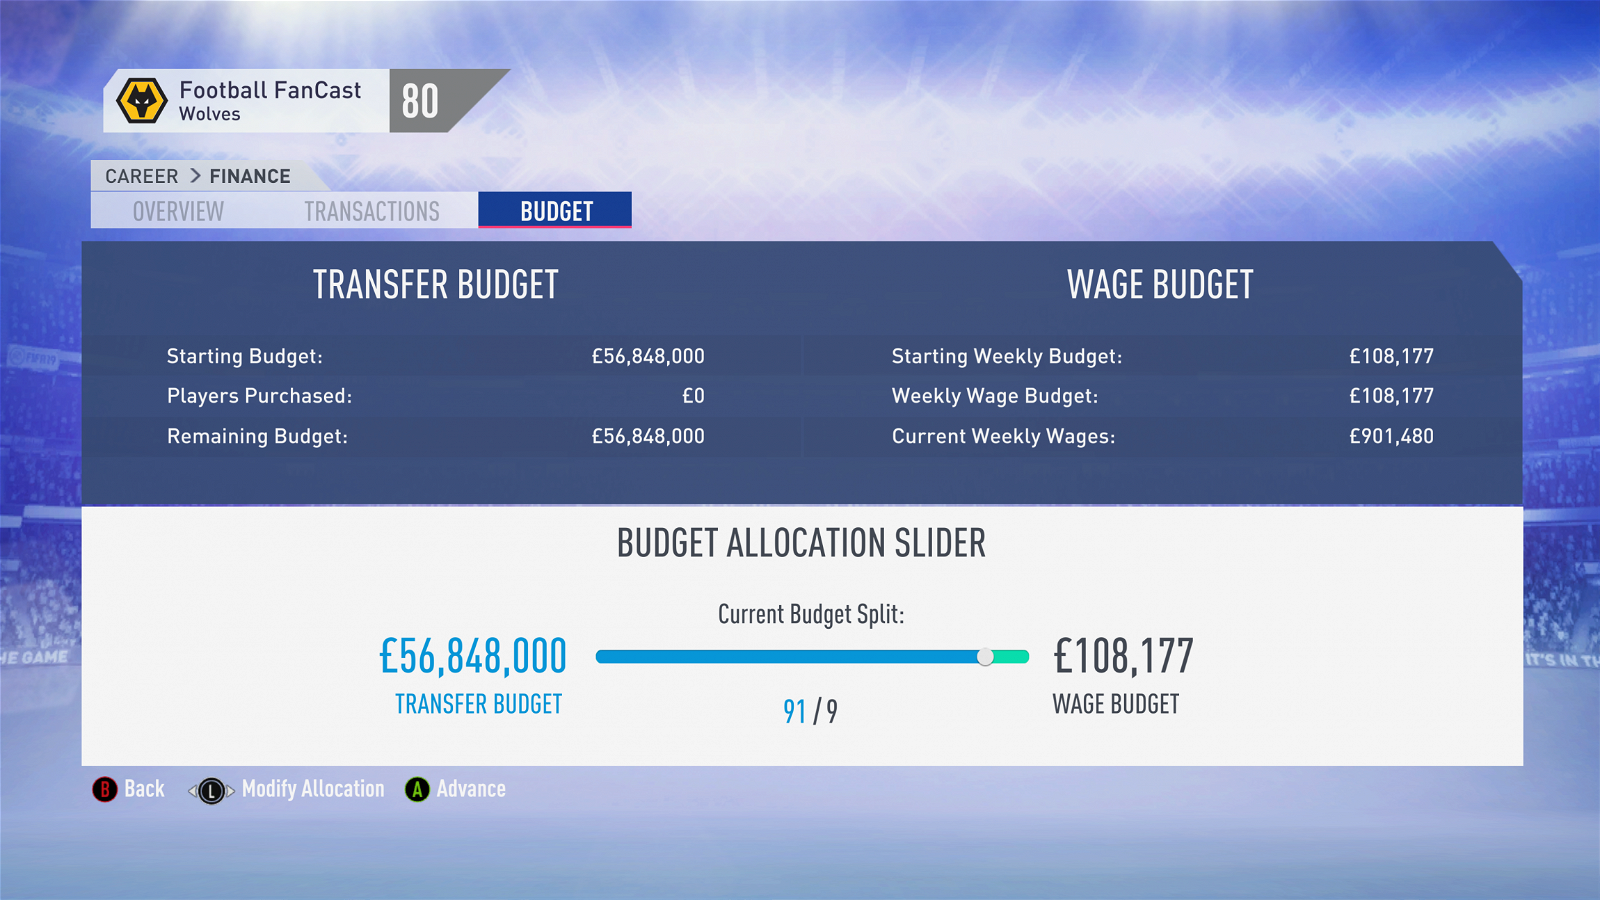 FIFA 19 Wolverhamton Wanderers Team Guide - Budget